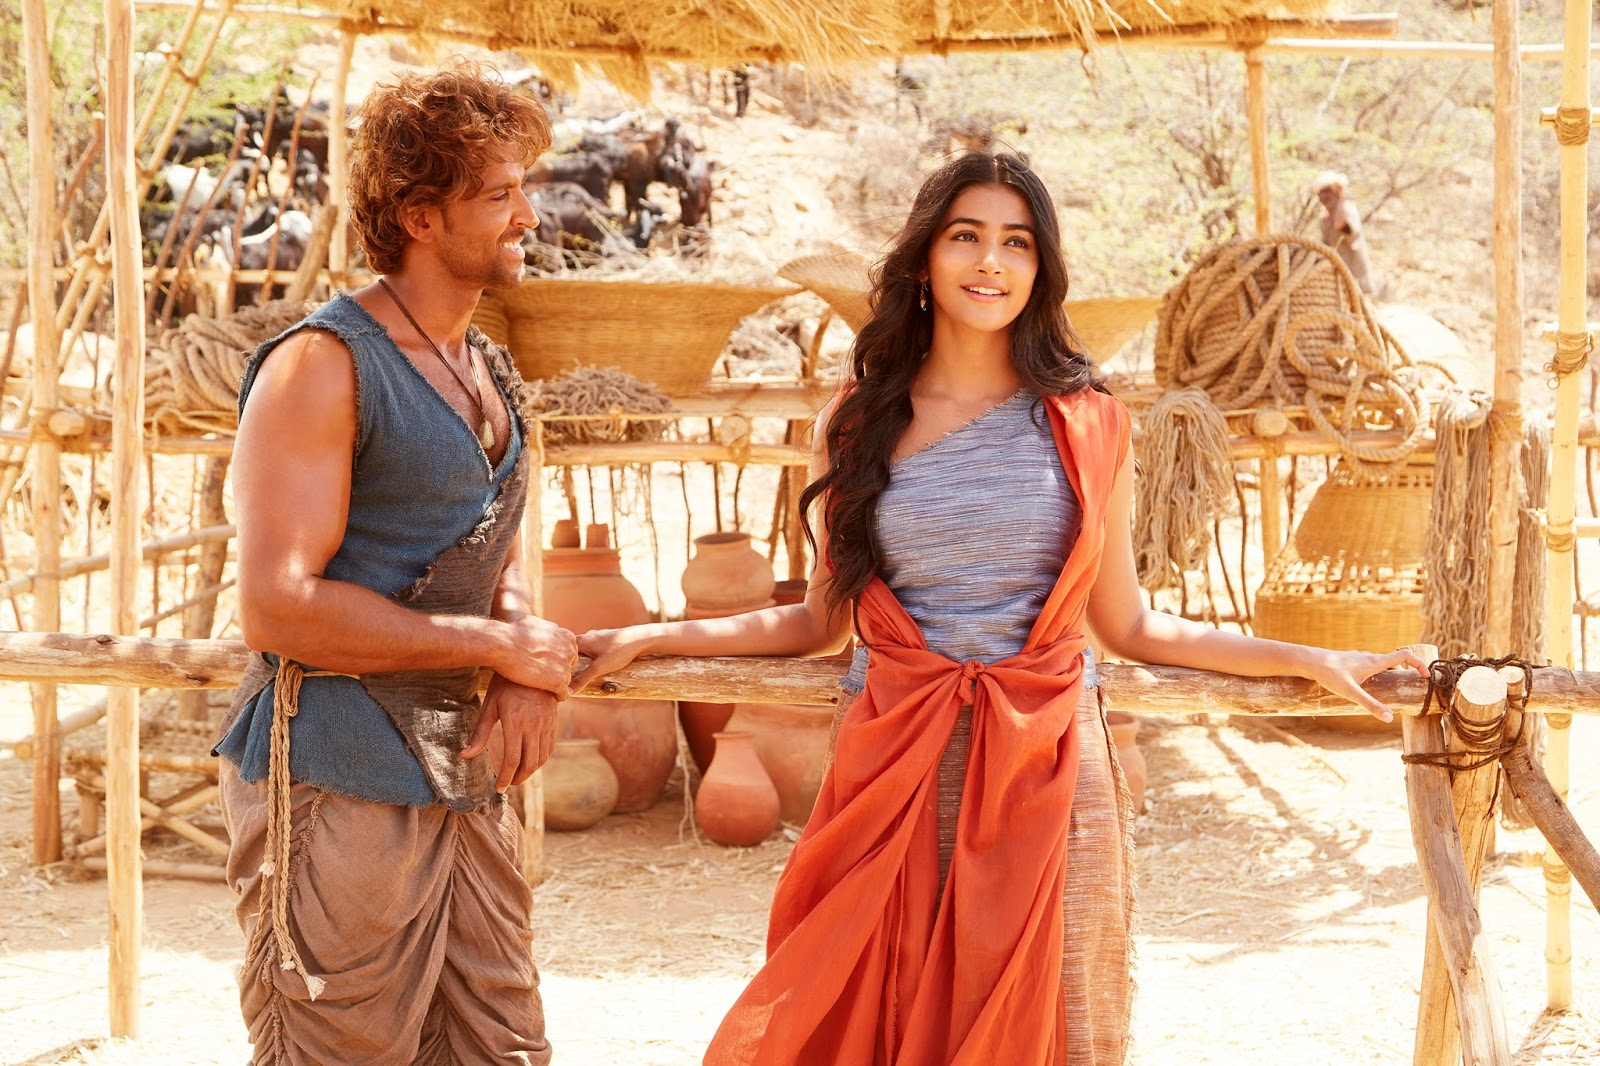 2016 diary of a dancebee what were your references for the costumes and looks of the characters in mohenjo daro